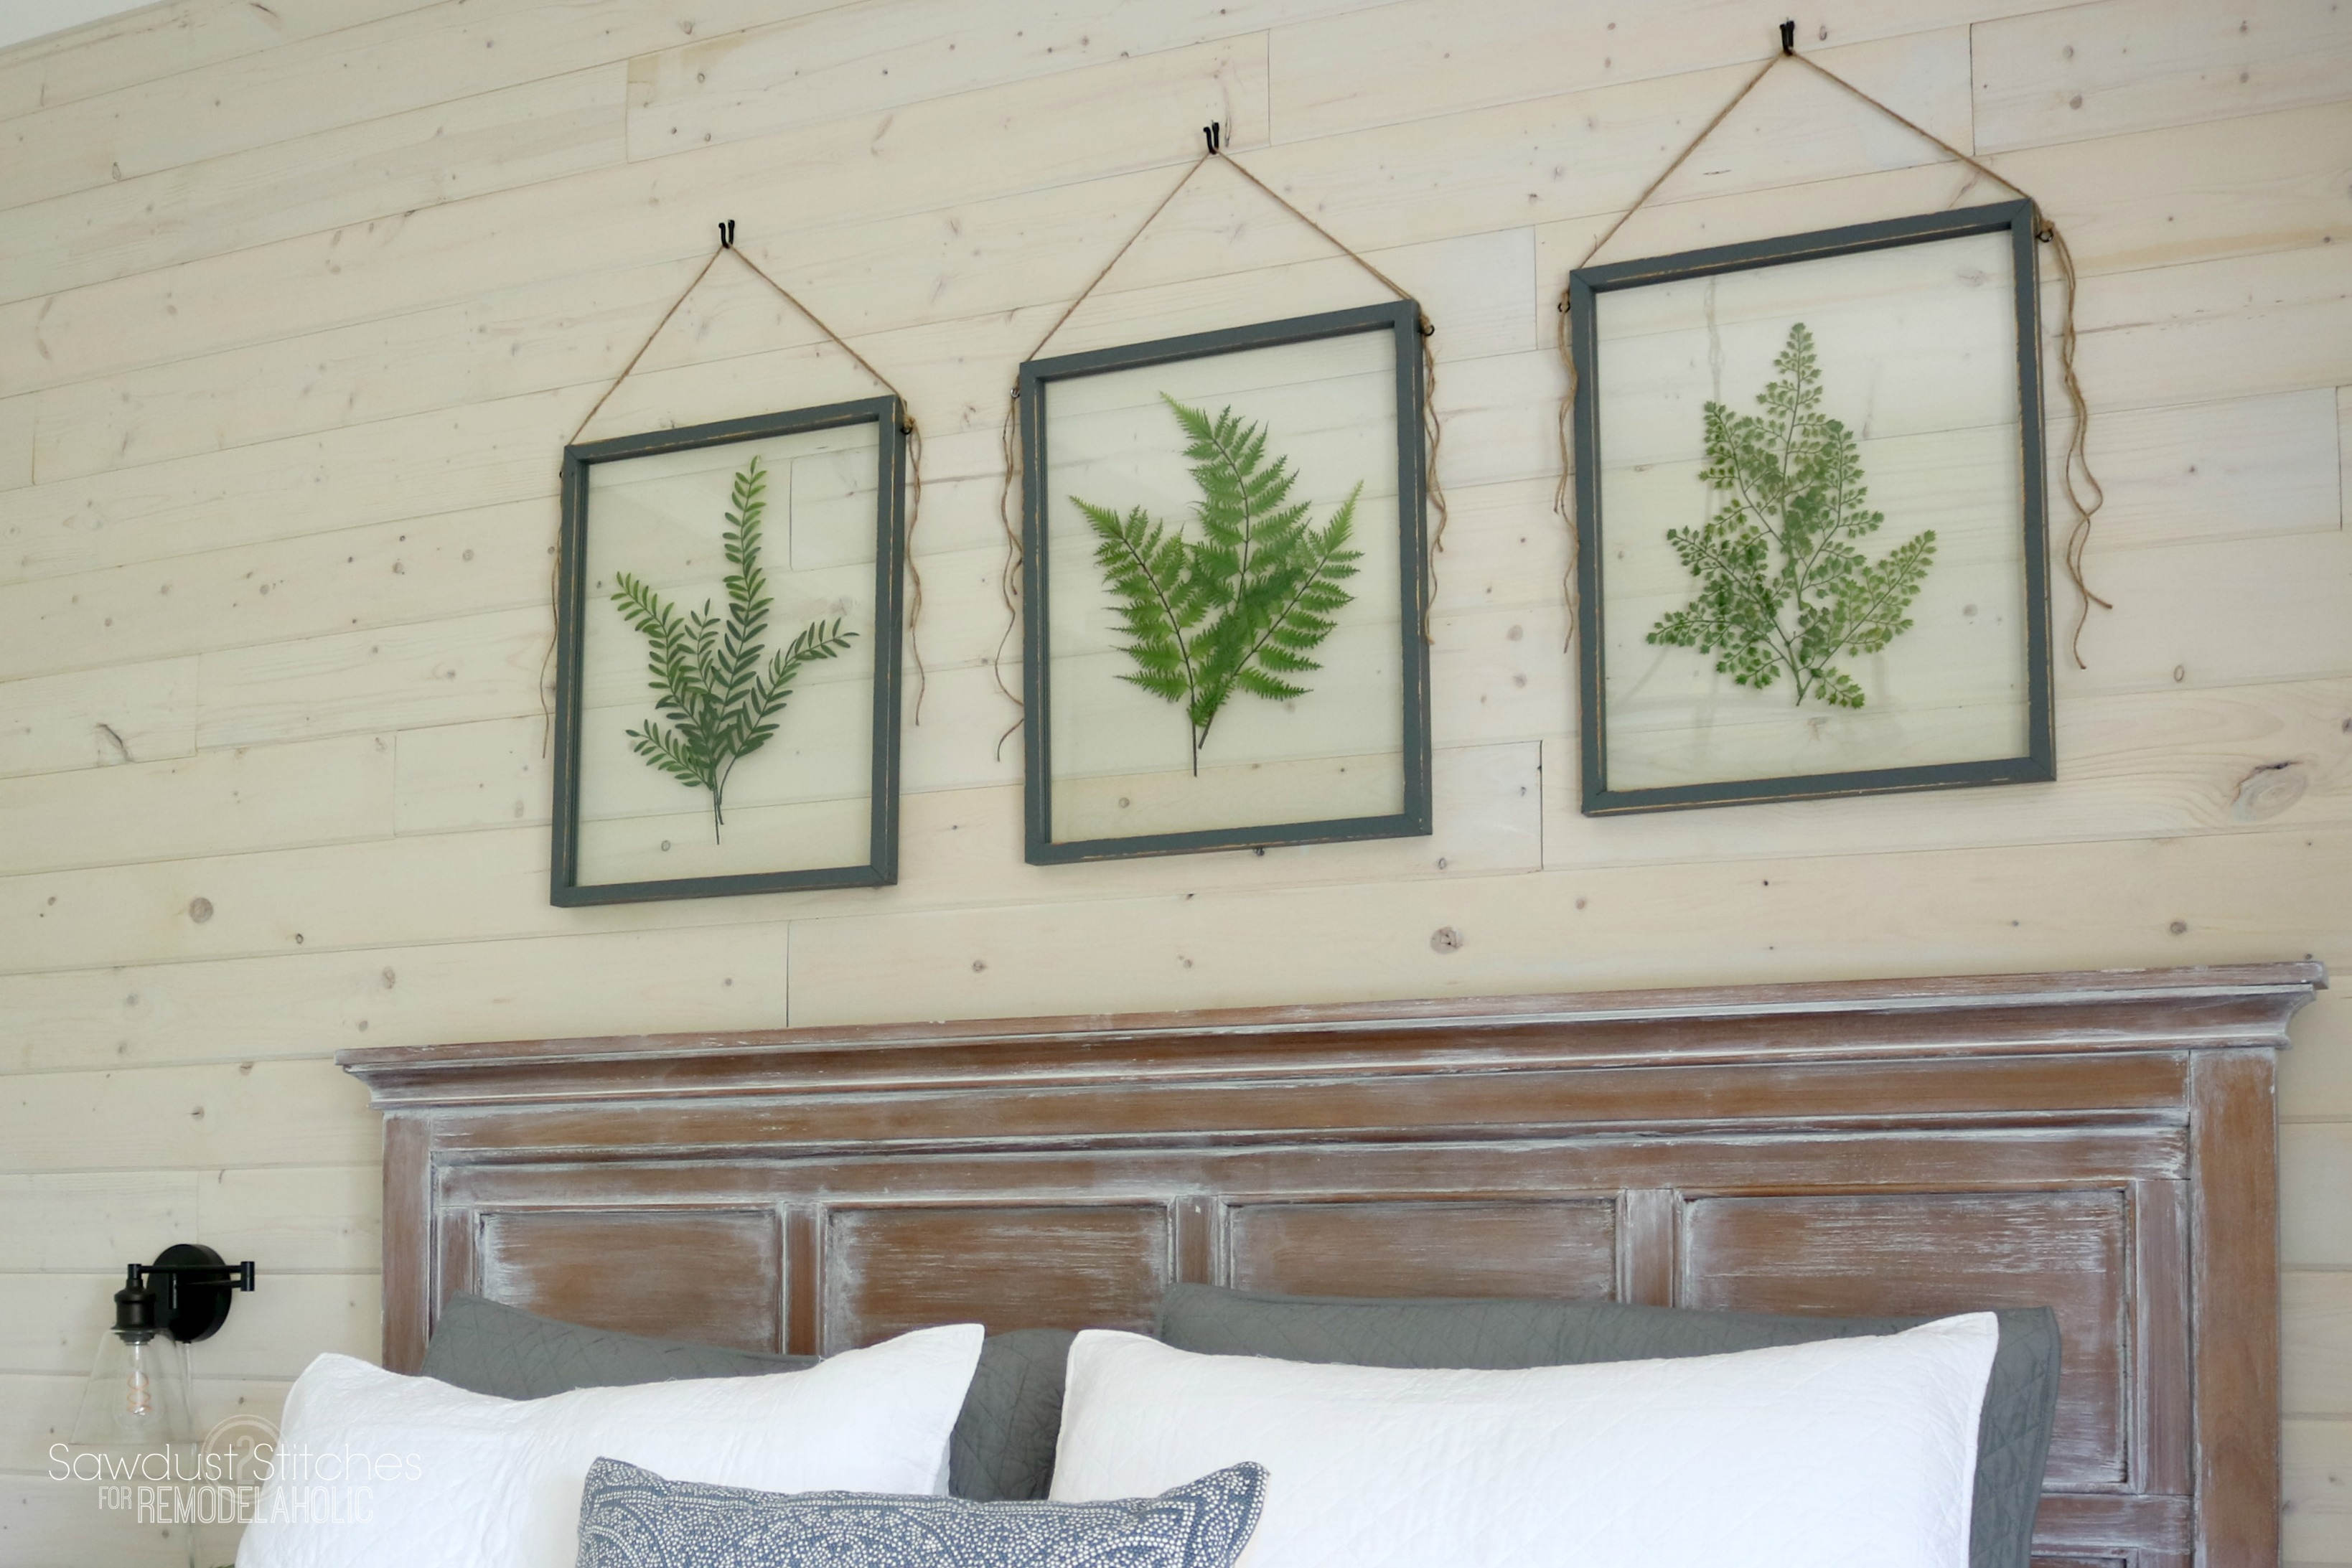 Diy Picture Frame Glass Remodelaholic How To Make Your Own Diy Pressed Plant Frame